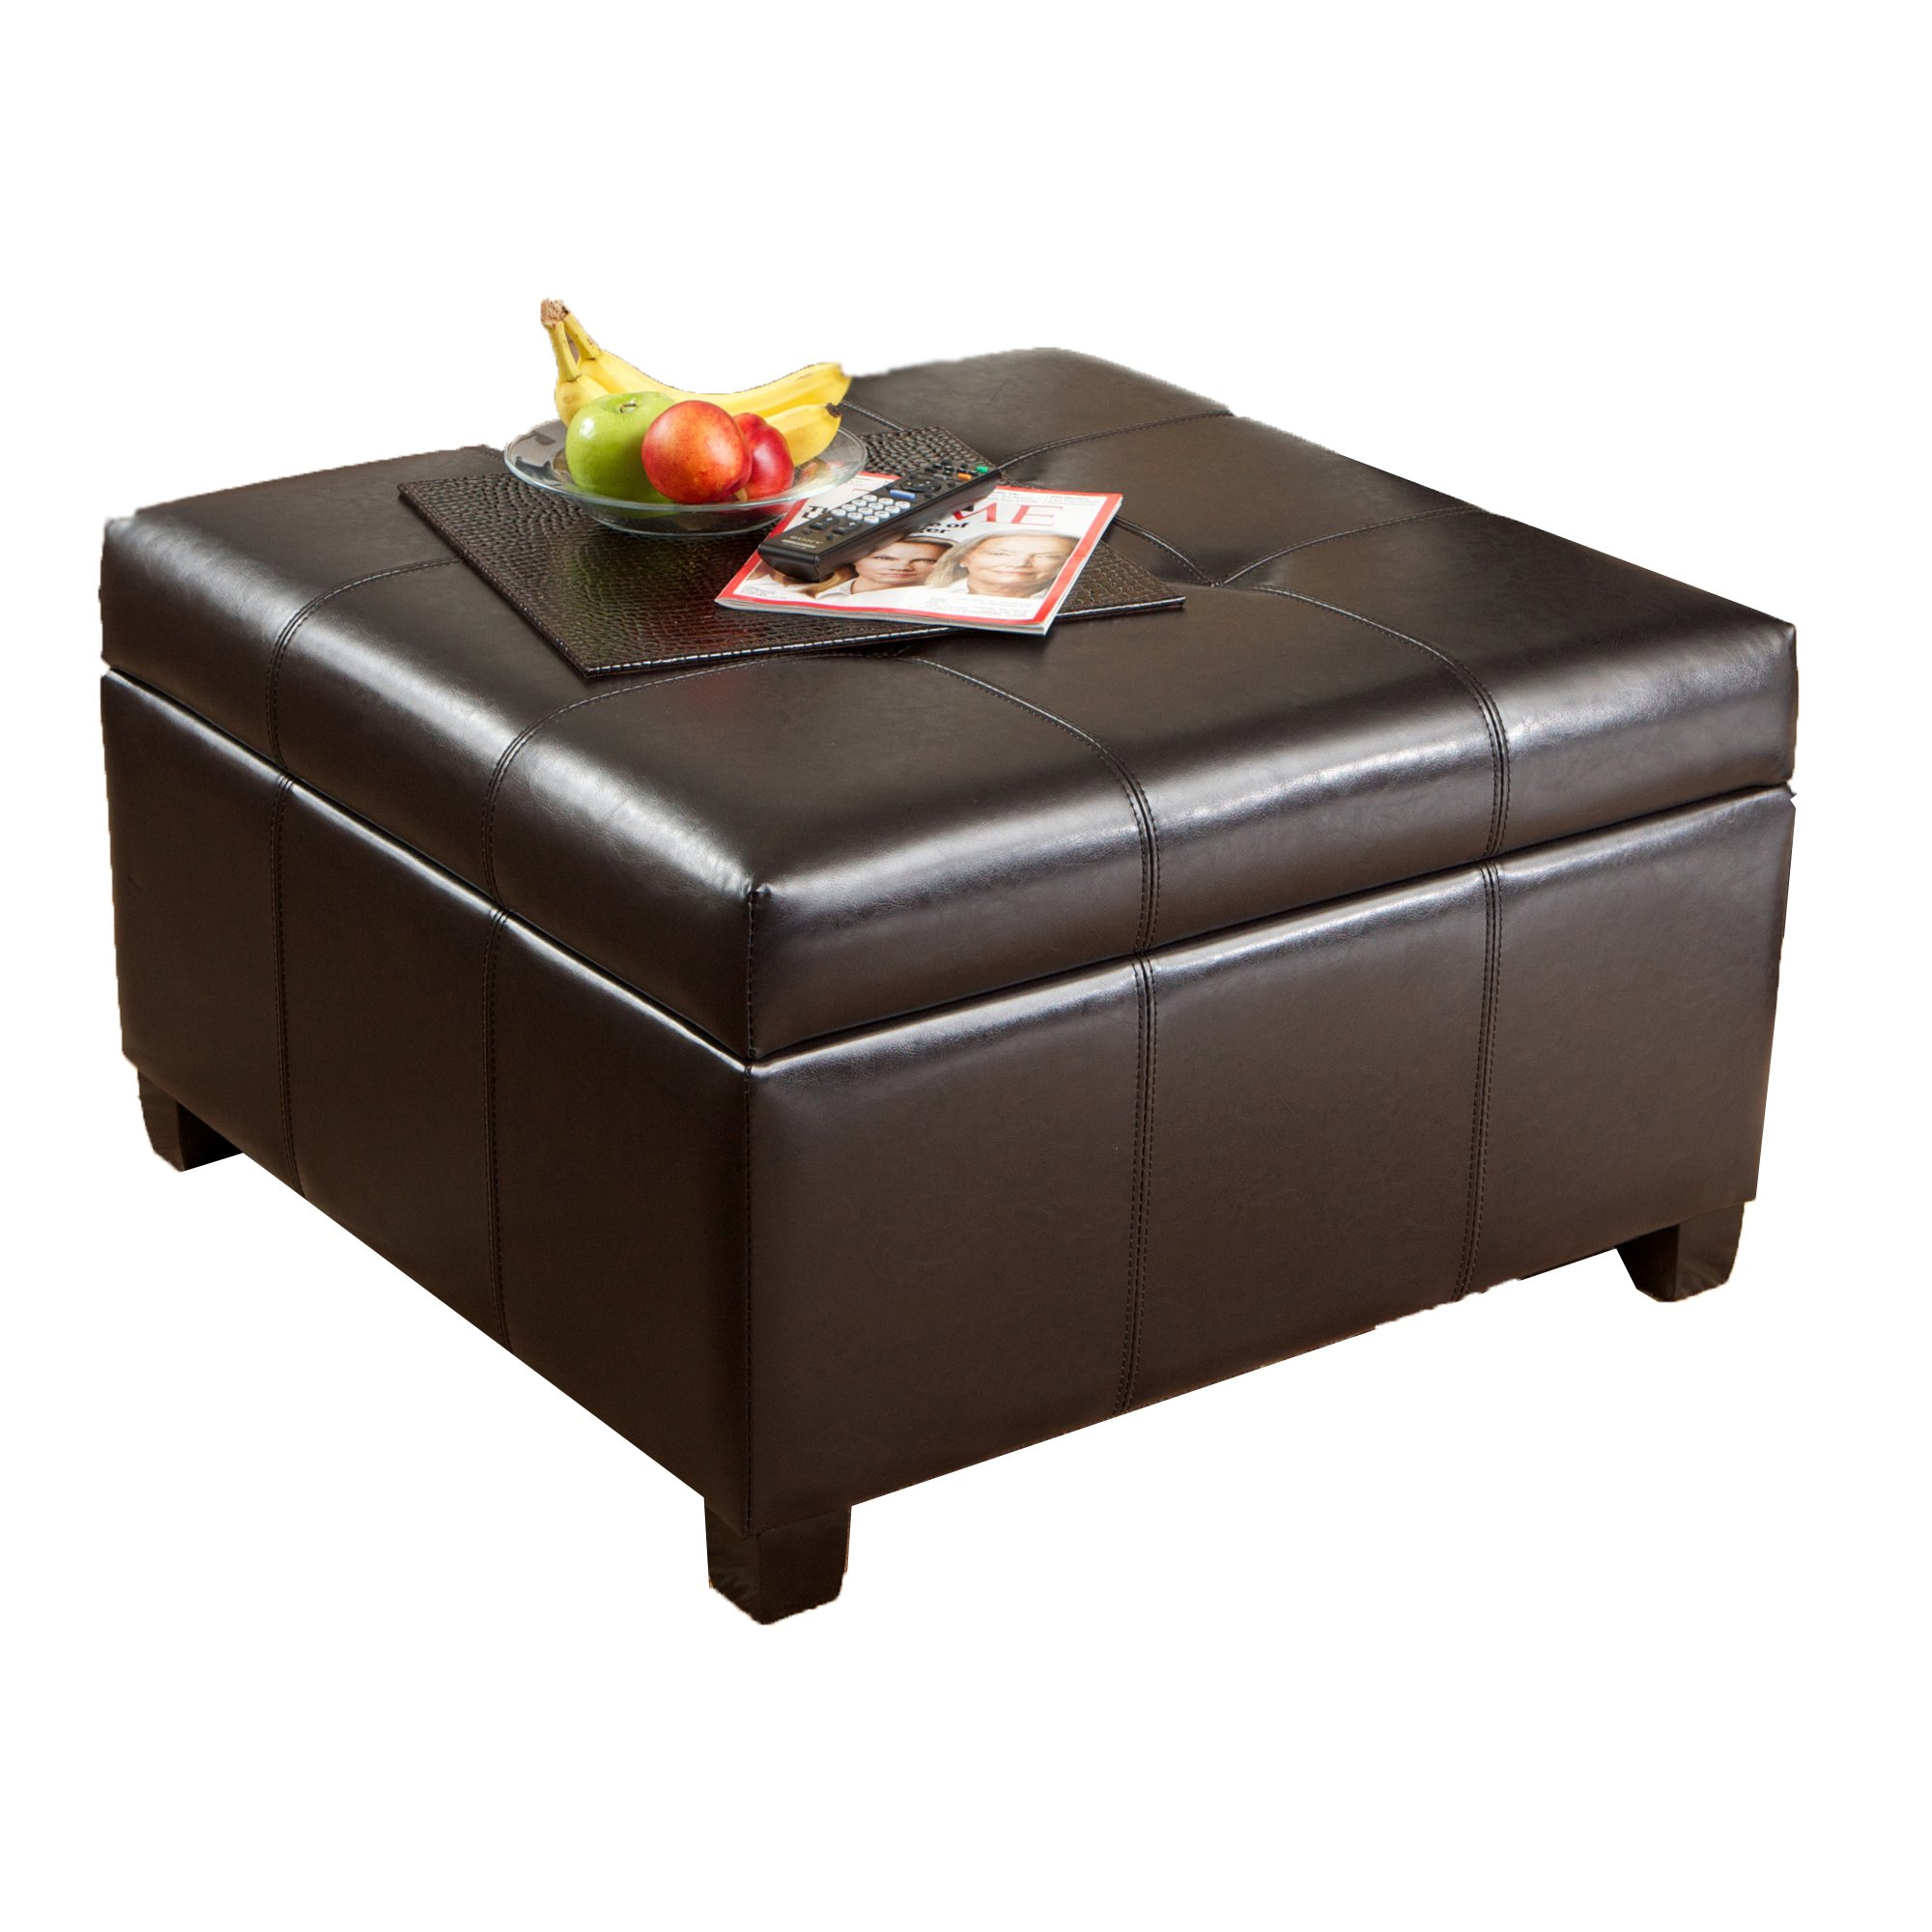 Best Selling | Storage Ottoman | Coffee Table | Square Shaped | Premium Bonded Leather in Espresso Brown by Best Selling